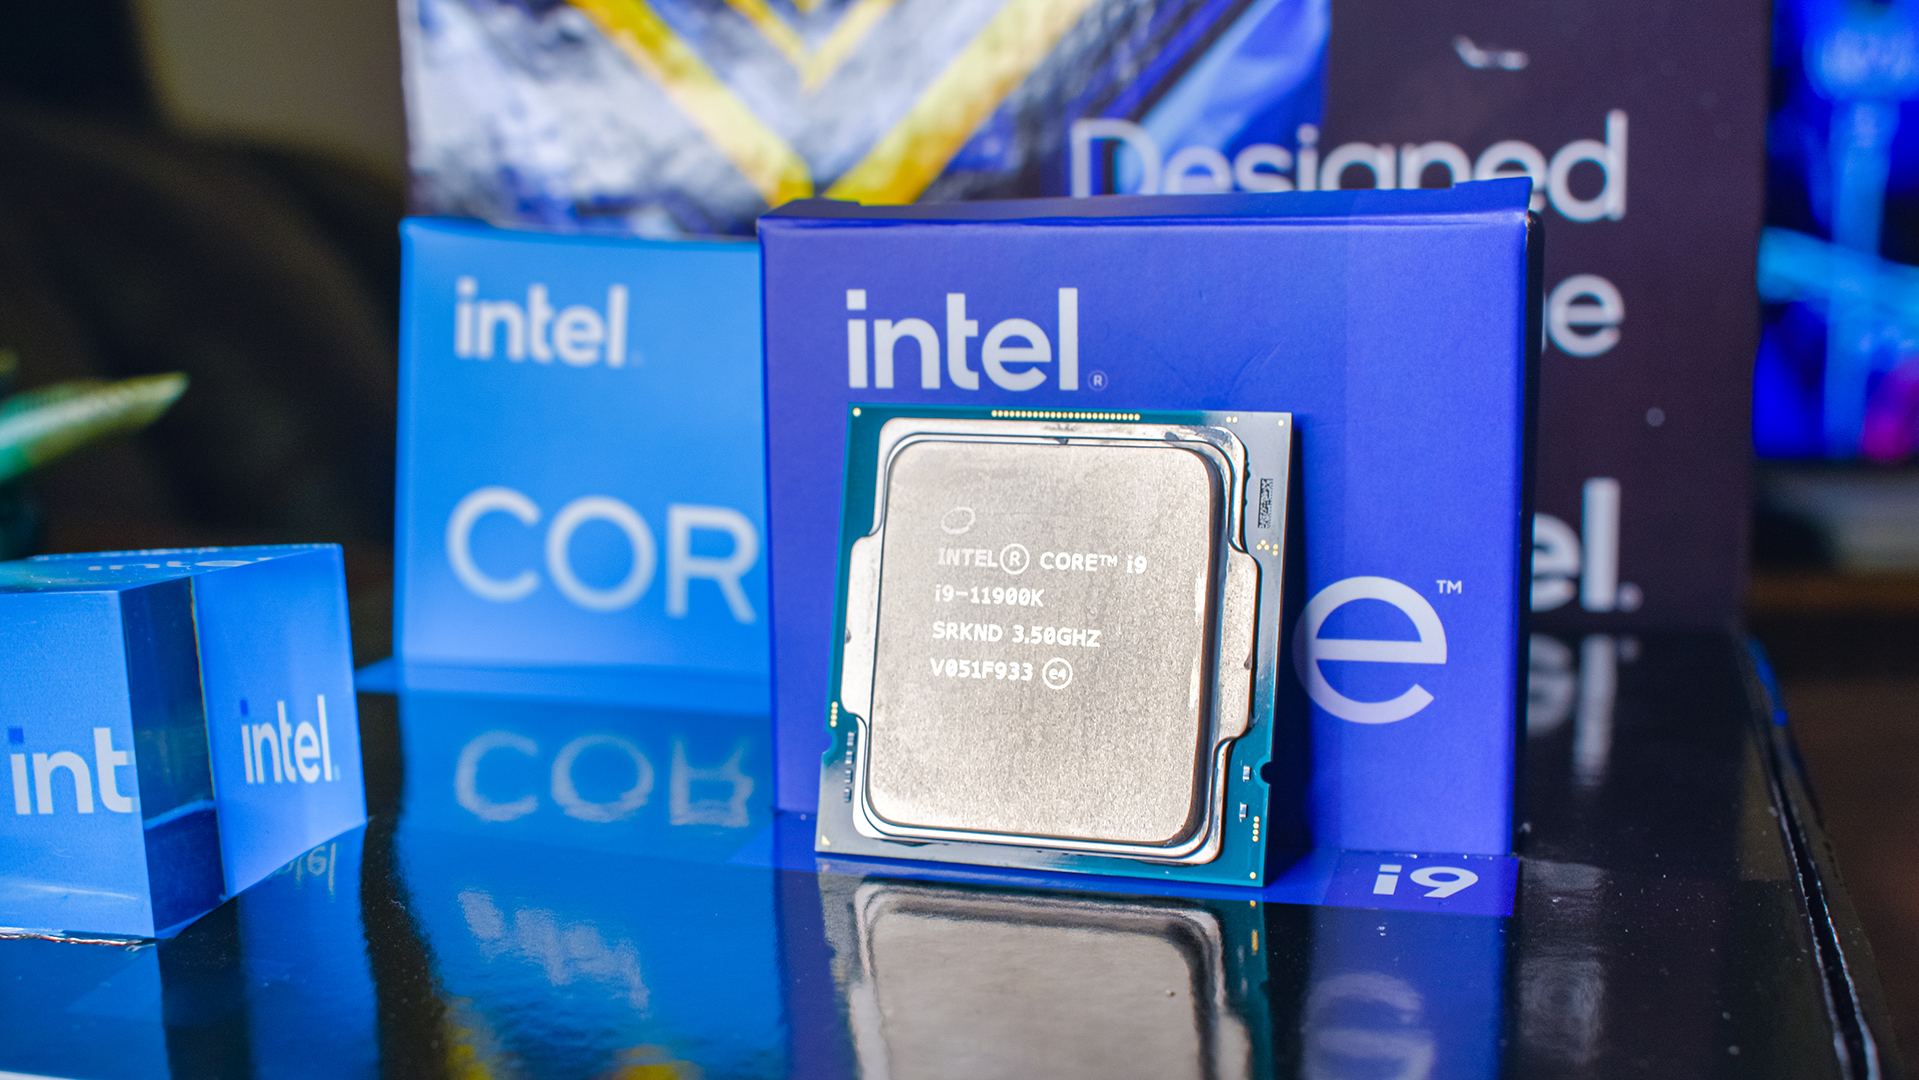 Intel Core i9-11900K review